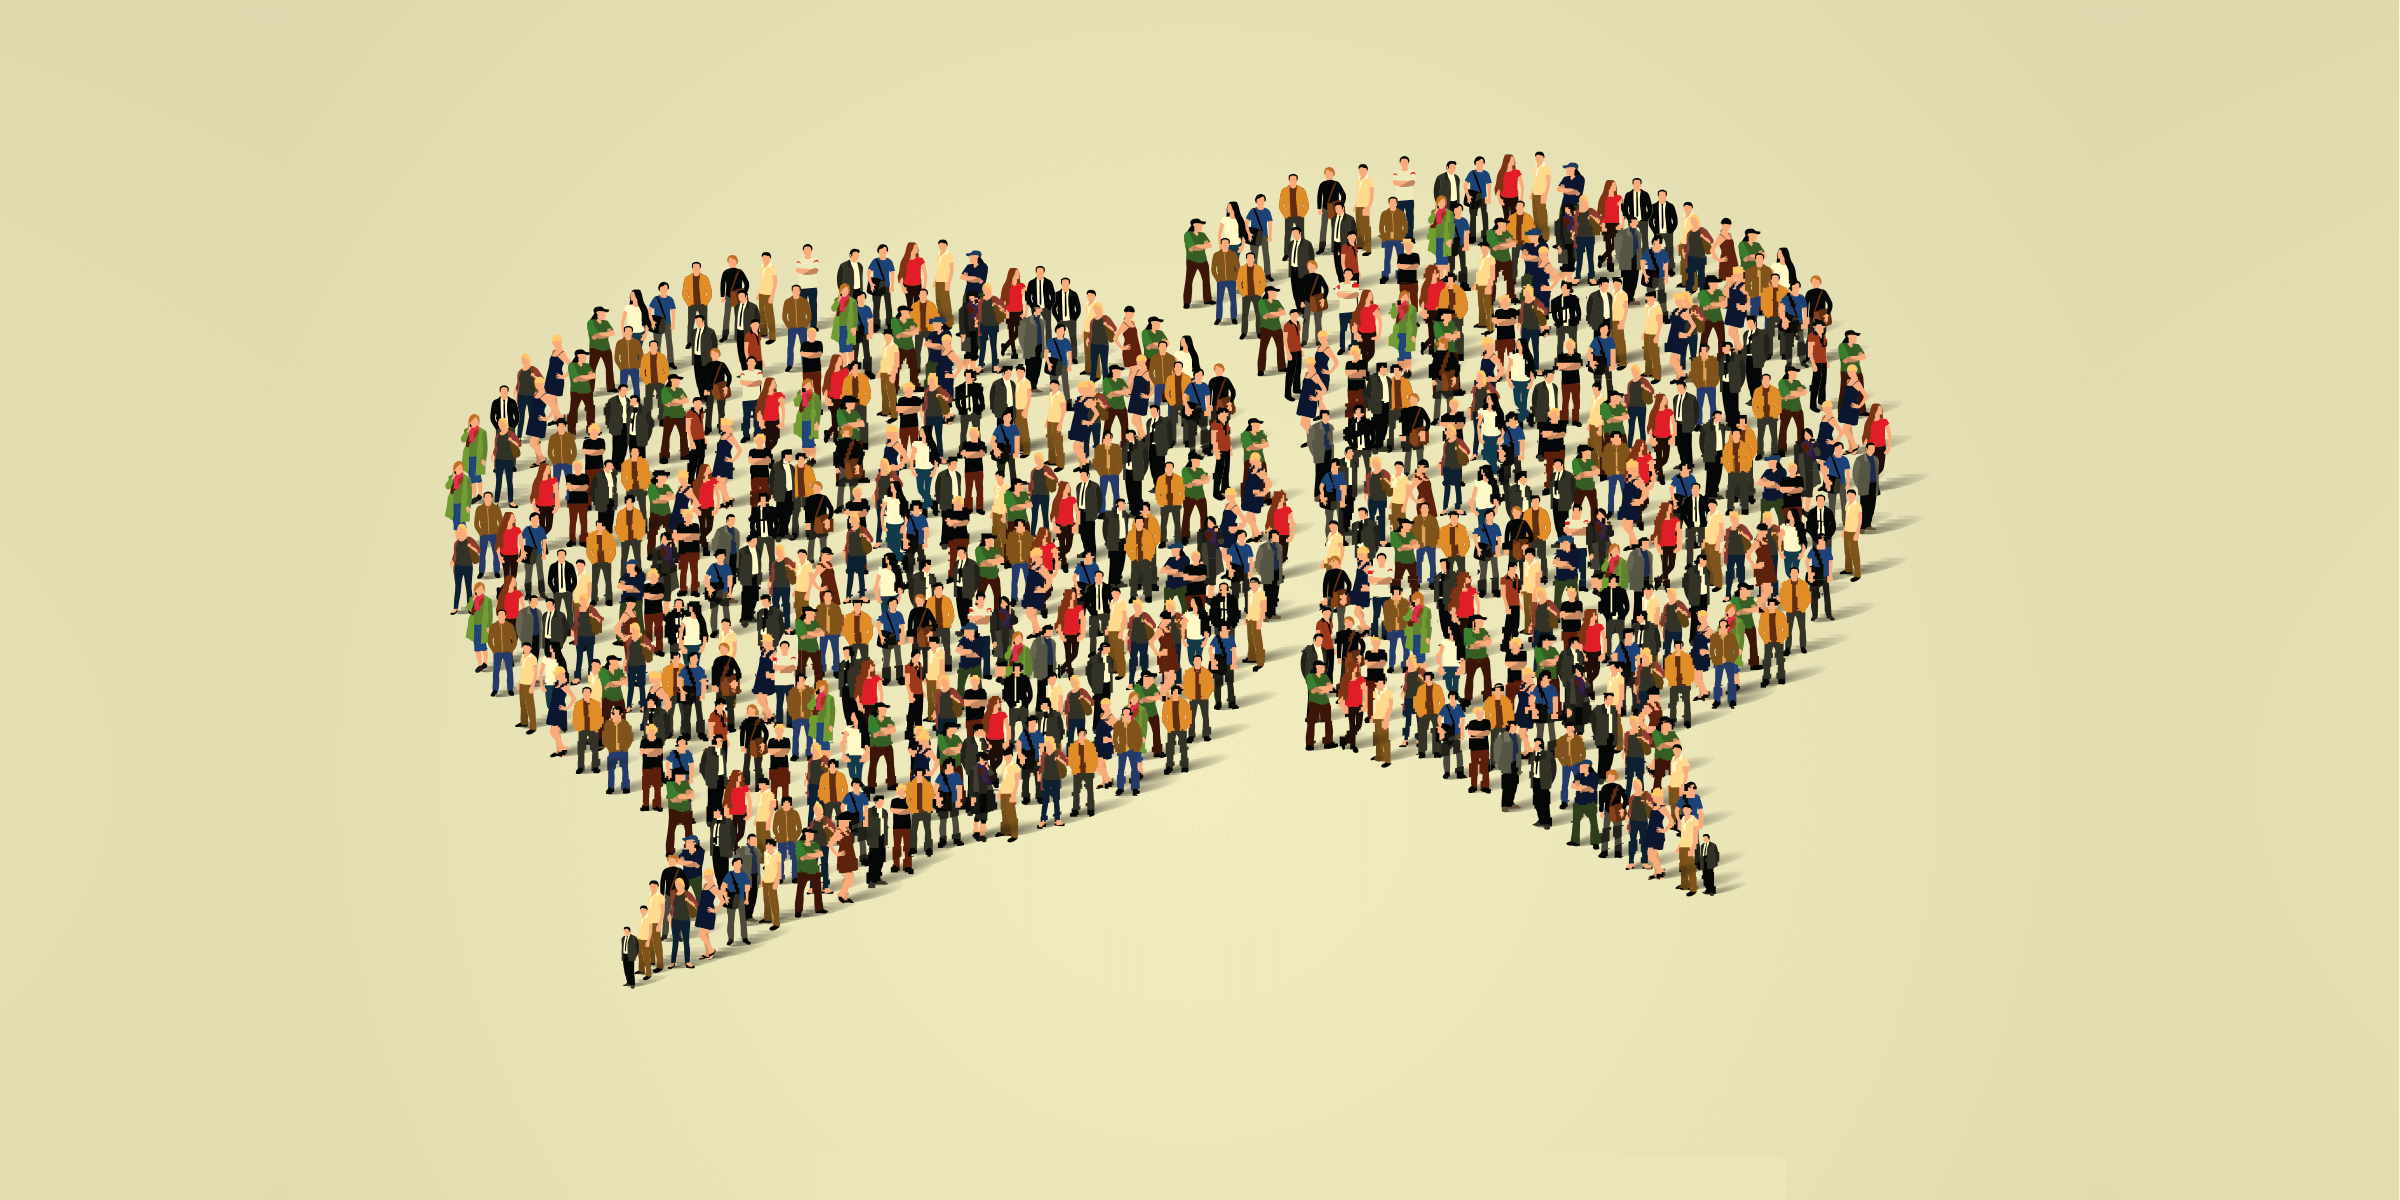 Two overlapping speech bubbles, each one comprised of dozens of people standing together in a large group.